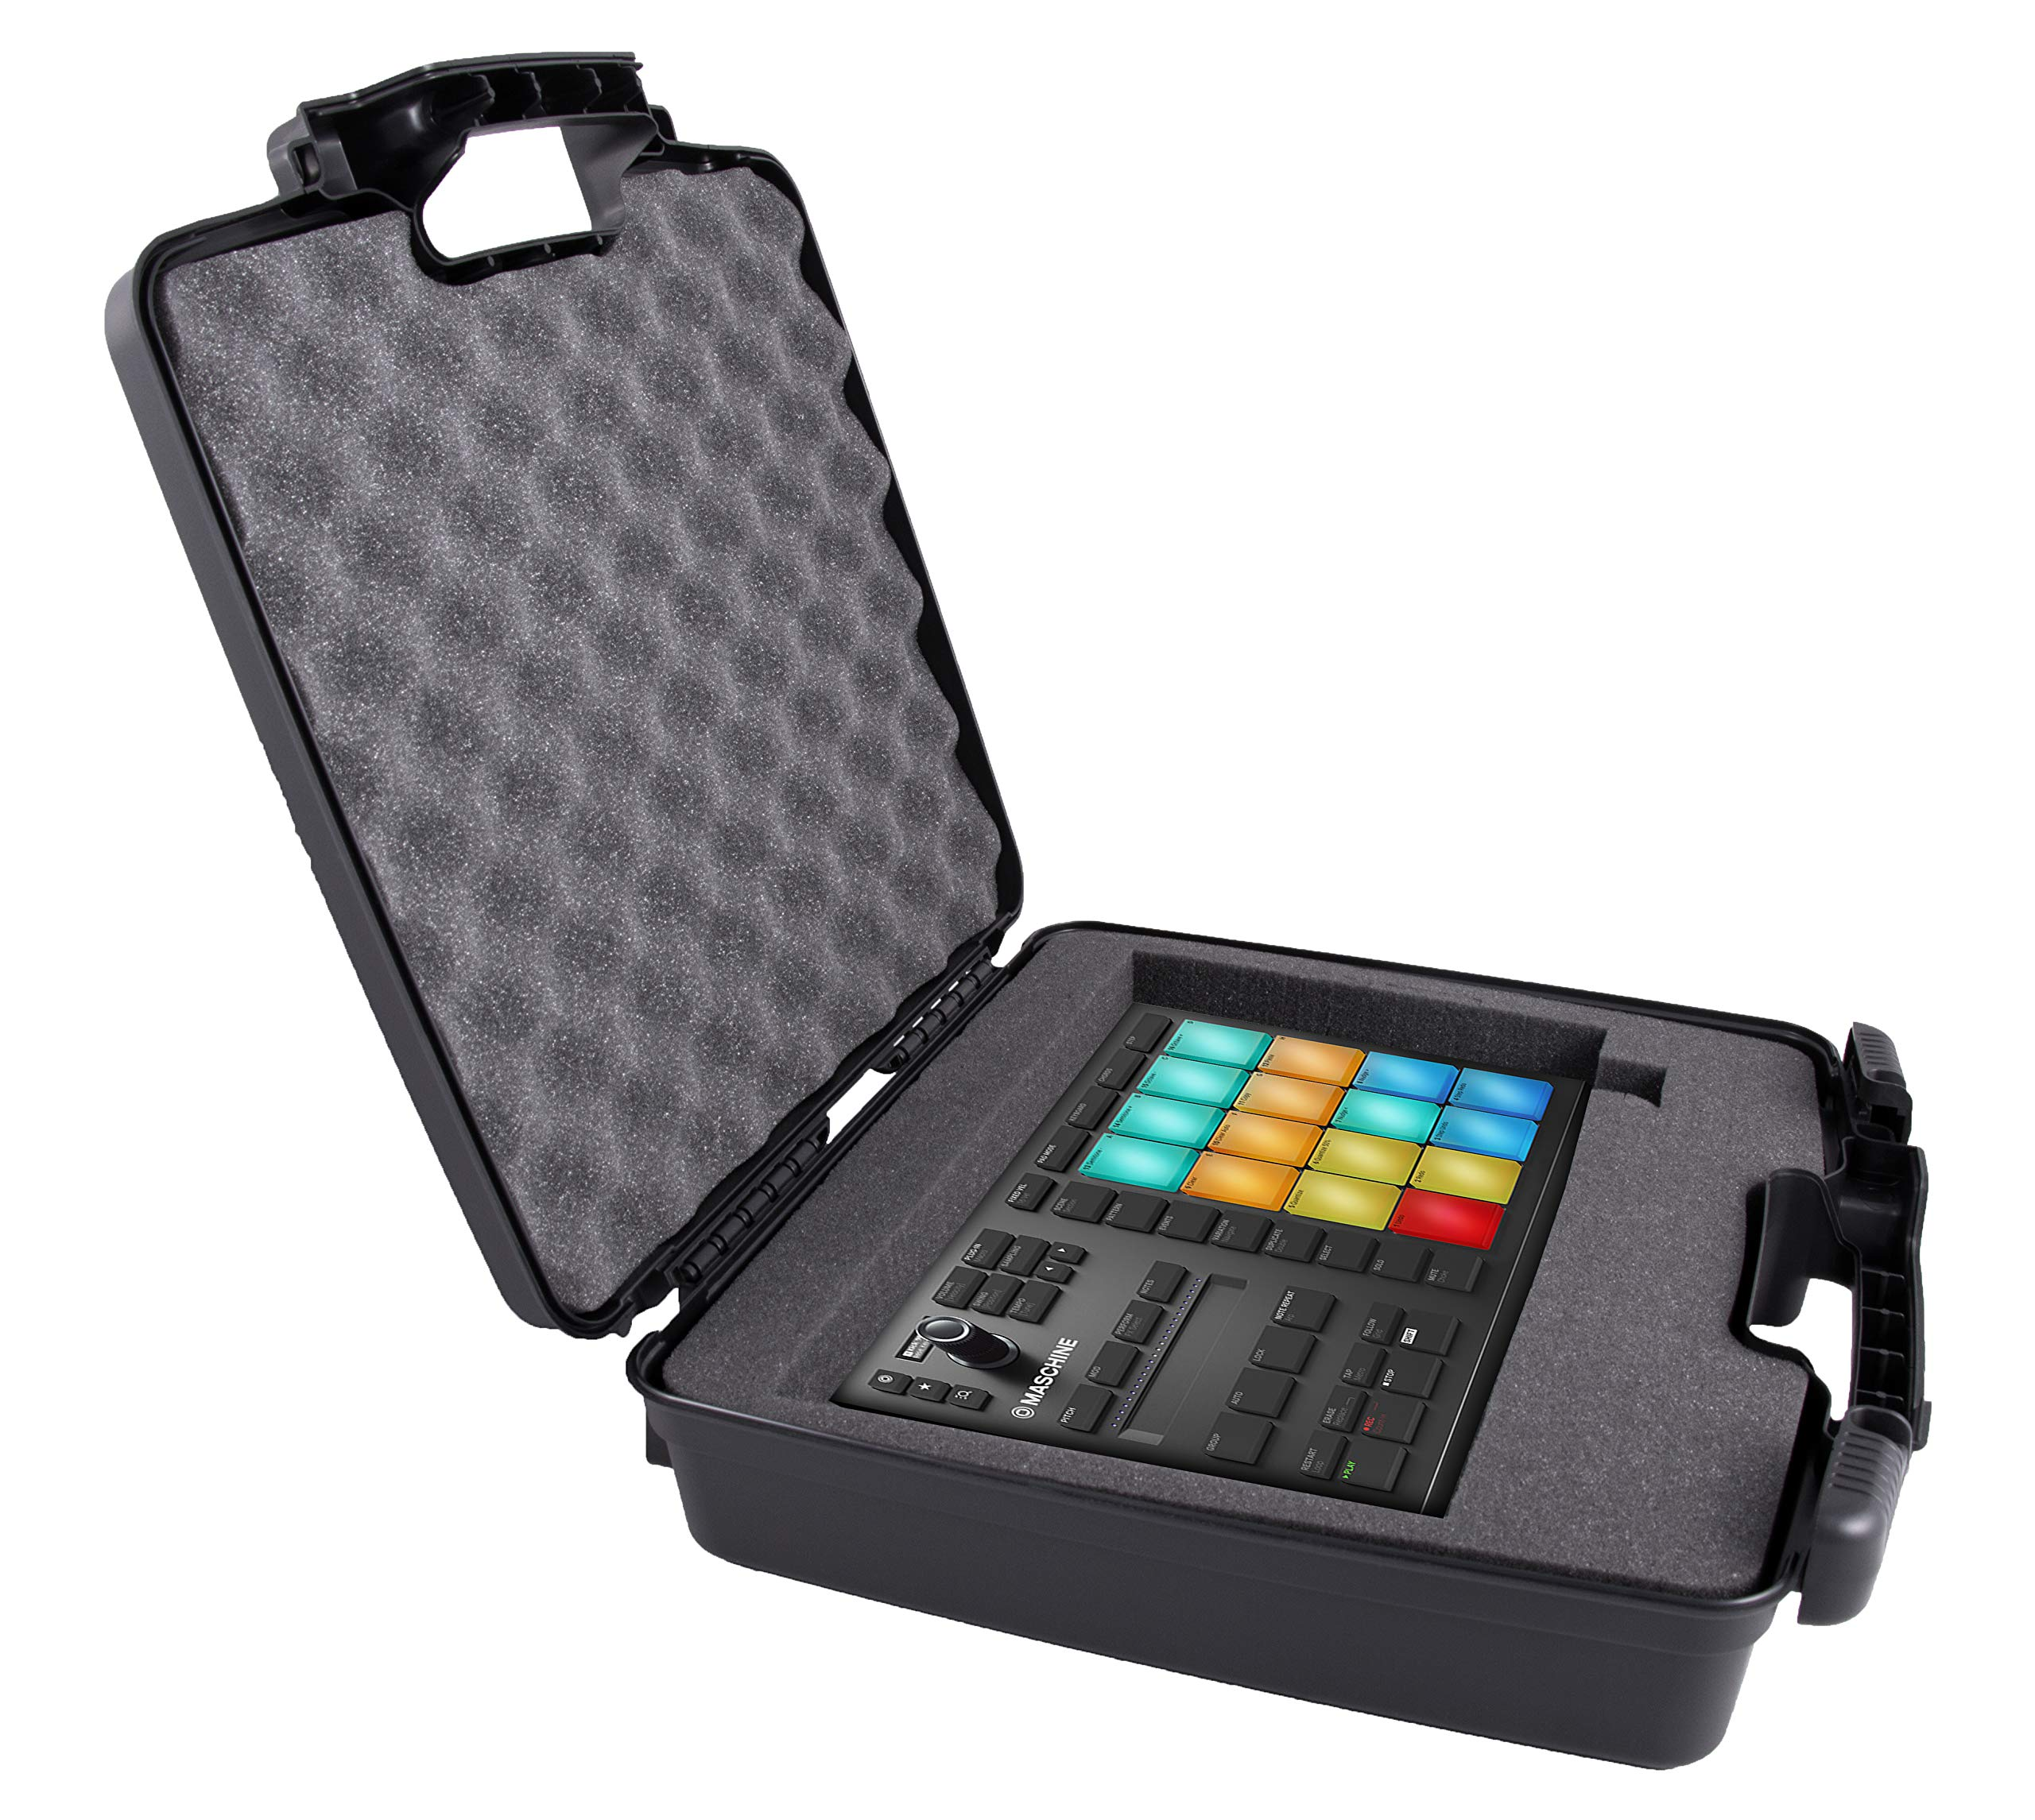 CASEMATIX Protective Hard Travel Case Fits Native Instruments Maschine Mikro Mk3 Drum Controller - Impact Protection, Dense Padded Foam by CASEMATIX (Image #4)